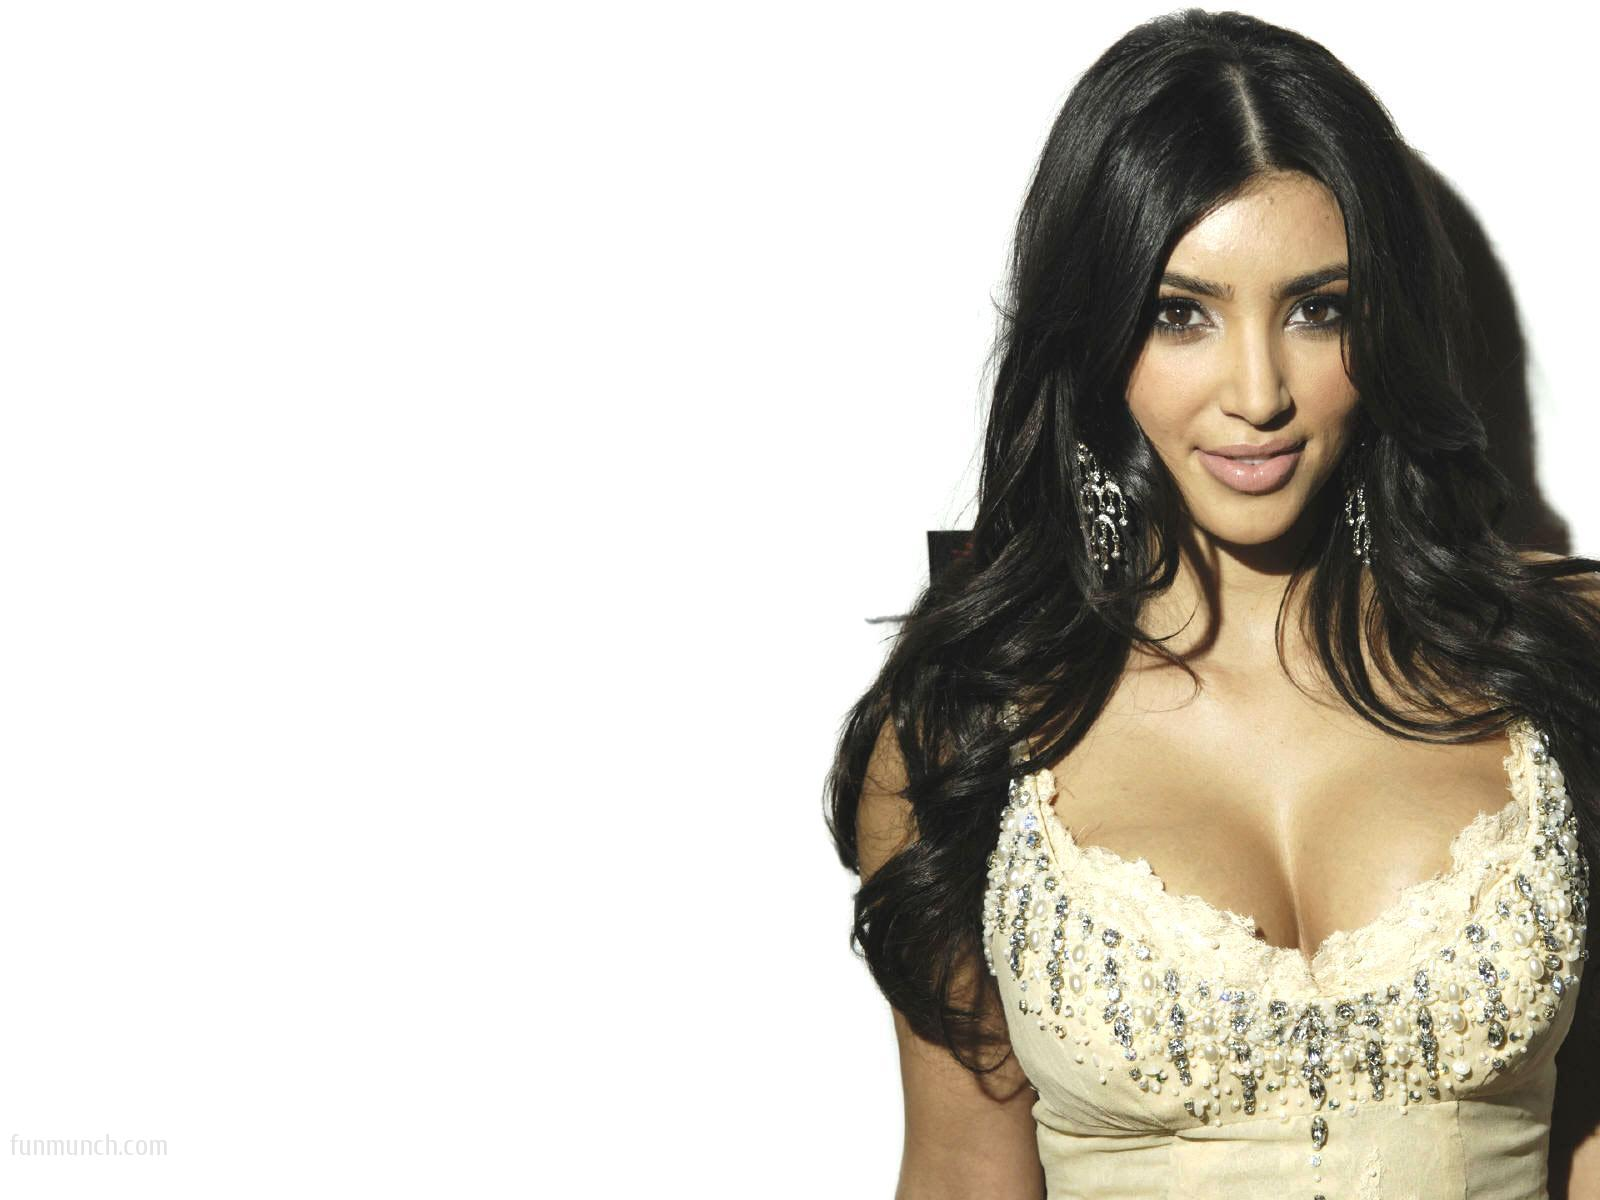 desktop kim kardashian wallpapers kim kardashian wallpaper hd 17jpeg 1600x1200